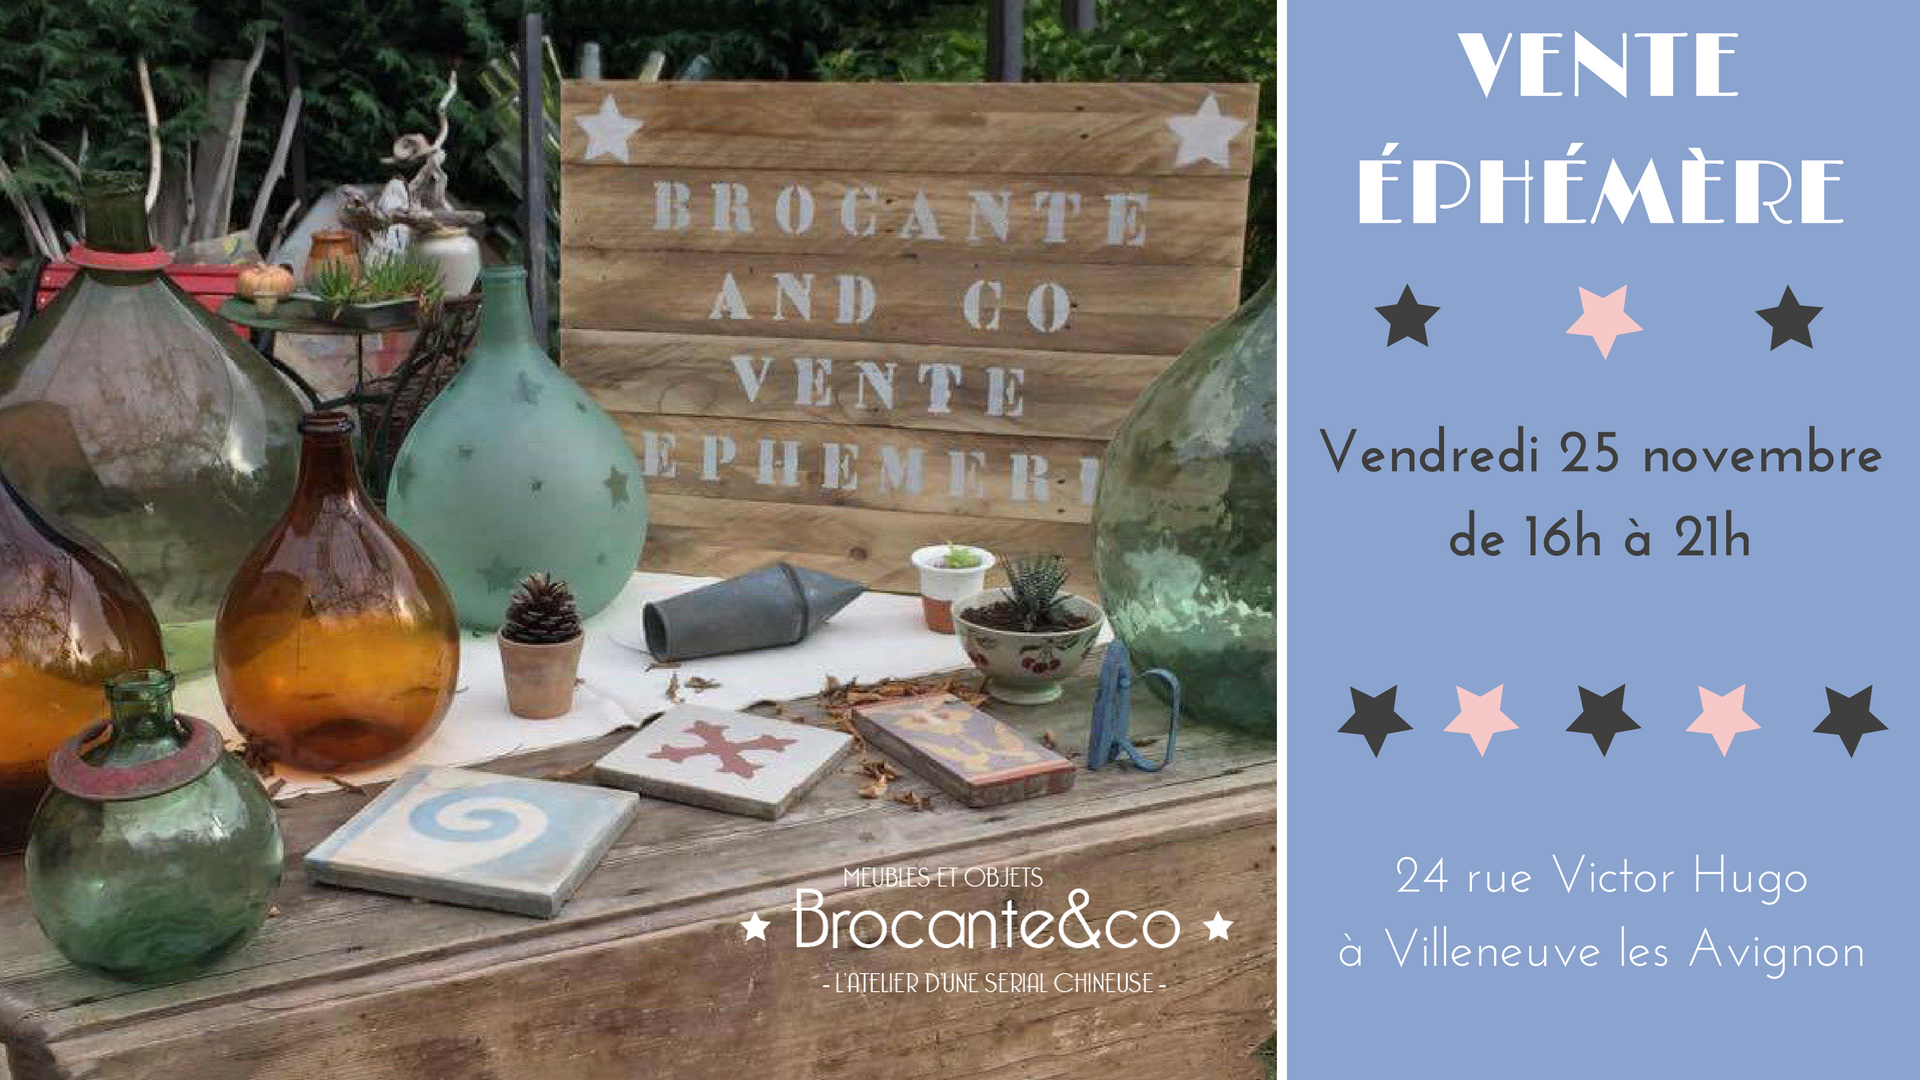 vente ephémère Brocante and co